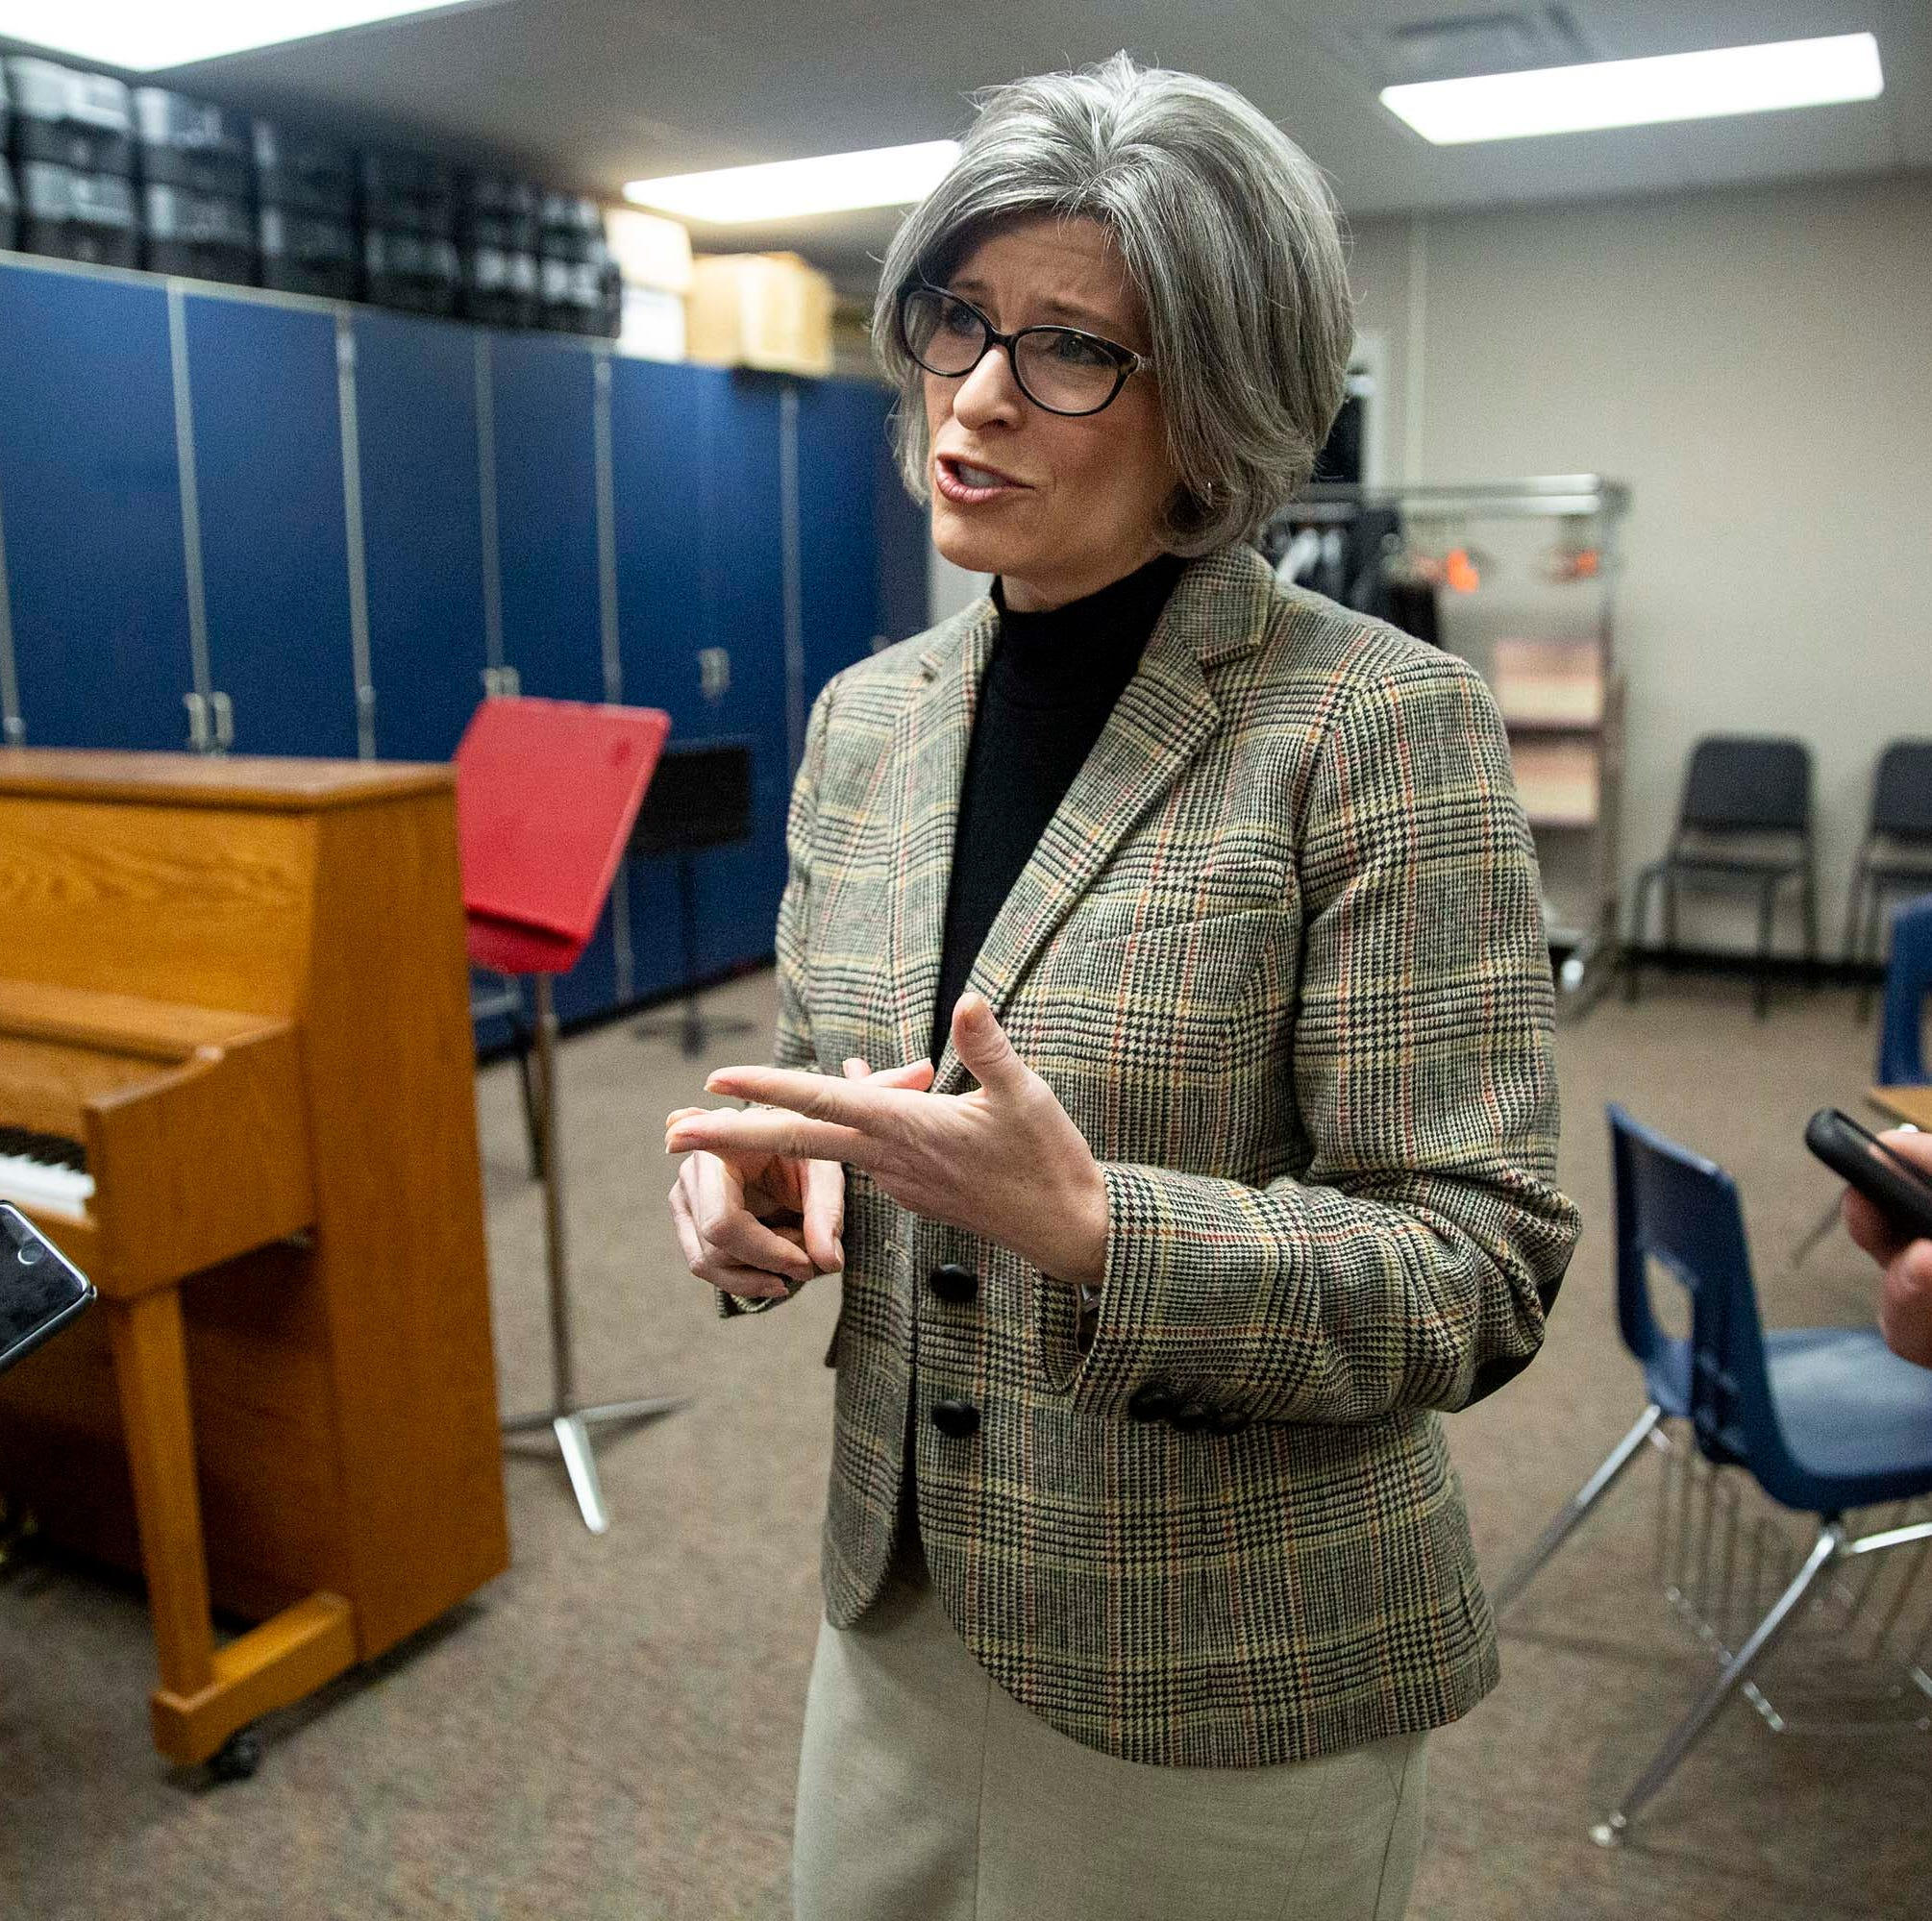 U.S. Sen. Joni Ernst, R-Red Oak, talks to reporters after holding a town hall meeting on Thursday, March 21, 2019, in the Adel DeSoto Minburn High School Auditorium in Adel.